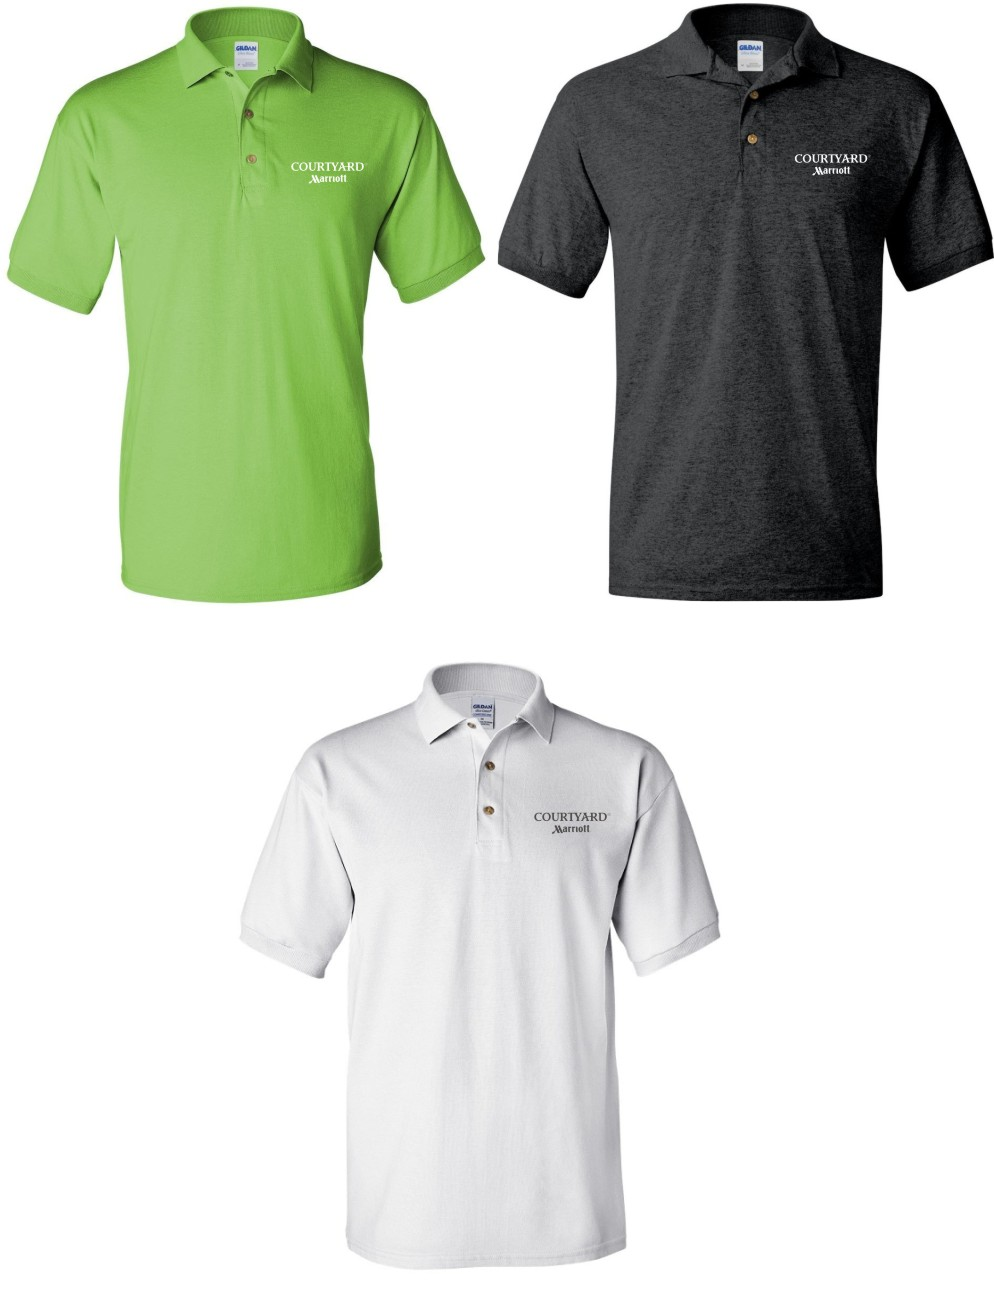 Polo Shirts. (Lime Green, Dark Heather or White) Screened Logo. DryBlend Fabric 50/50 - 3-Button Placket - Knitted Collar/Cuffs